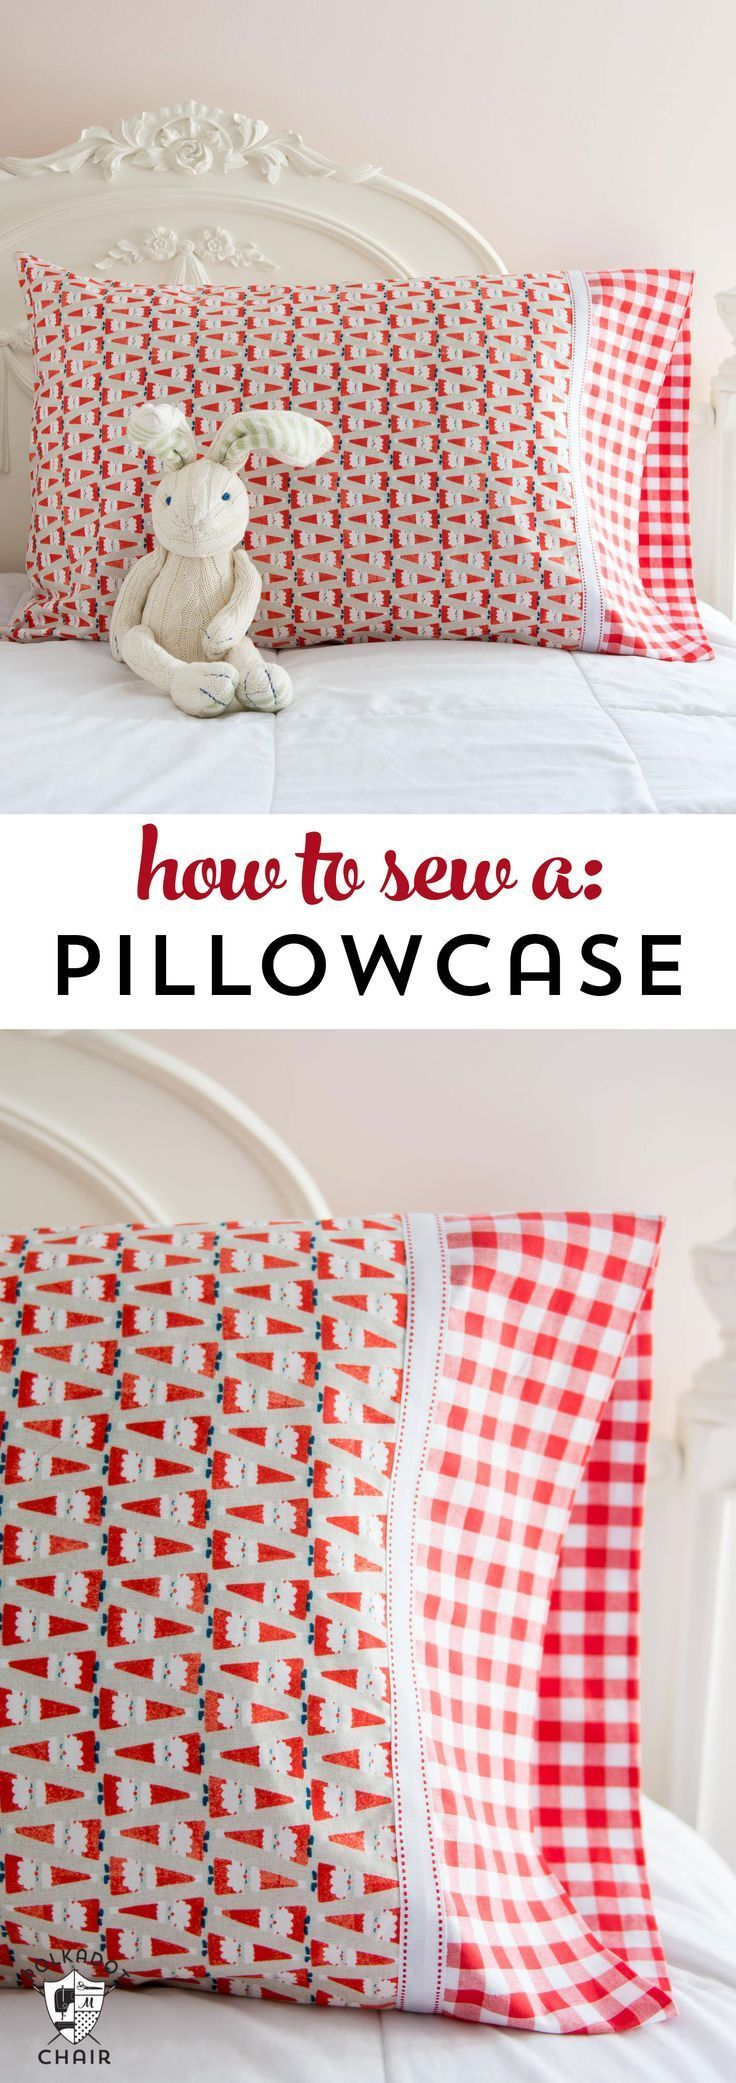 Pillowcase Ideas: 25+ unique Pillow case crafts ideas on Pinterest   Sewing pillow    ,